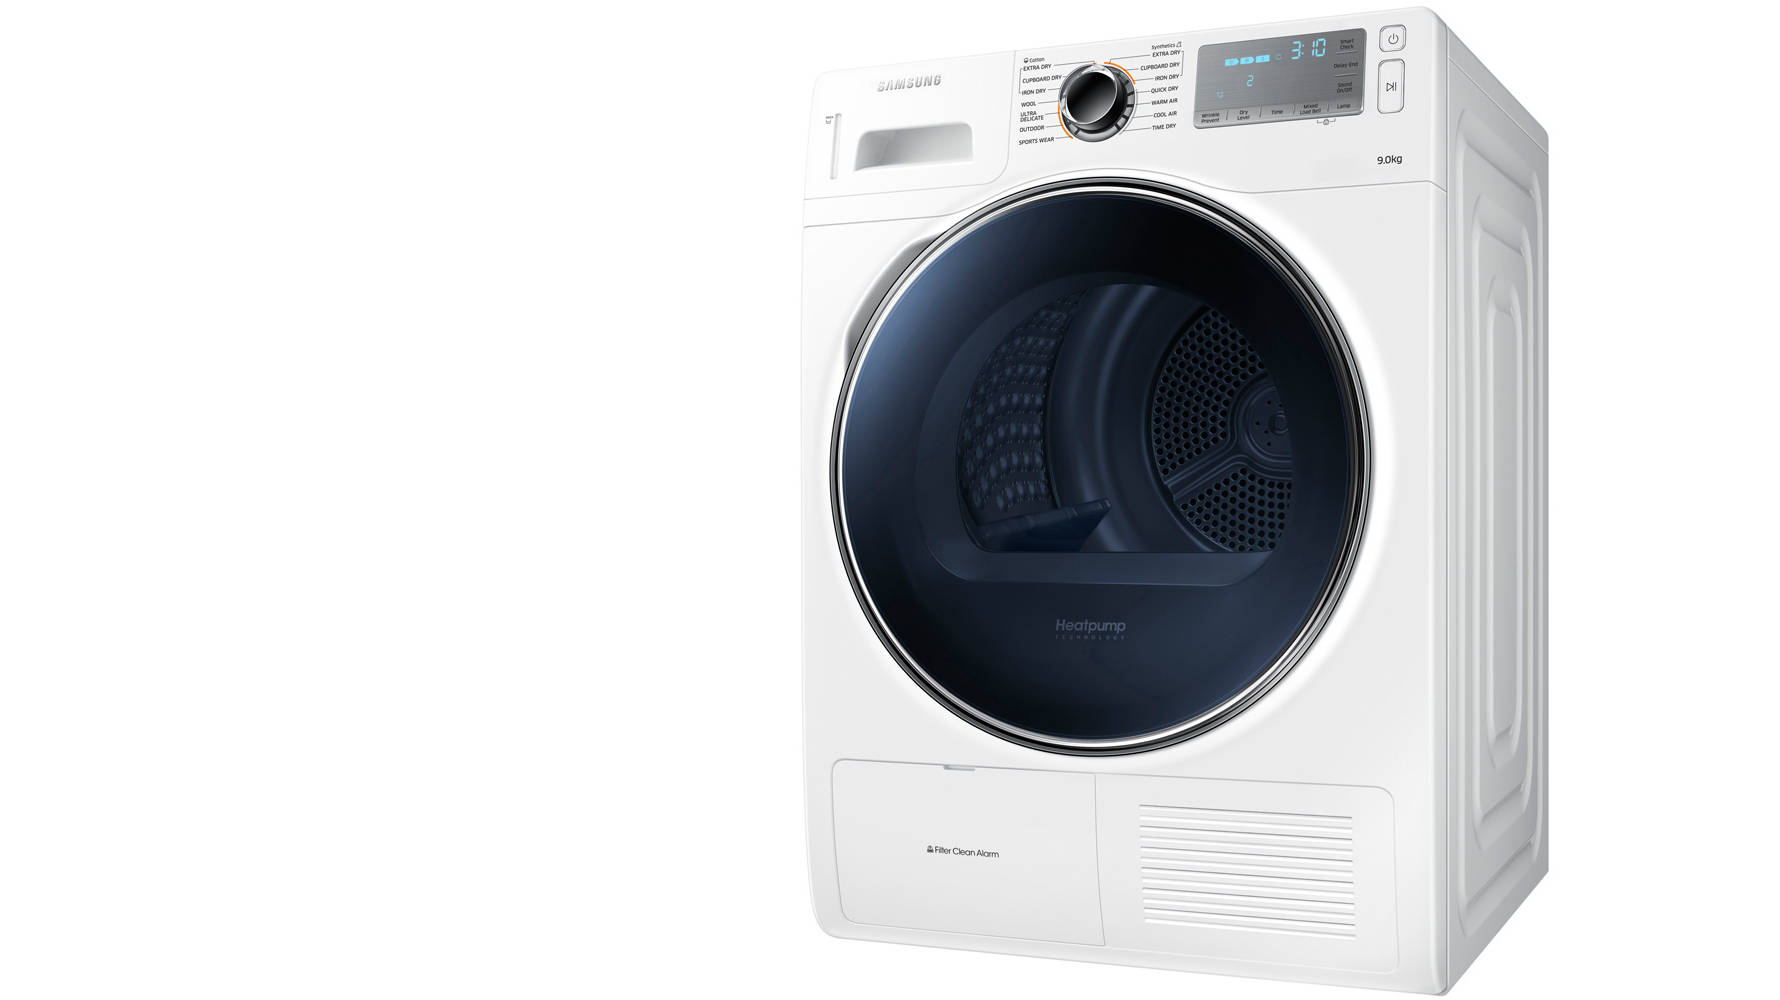 Best Tumble Dryer: The Best Condenser, Vented And Heat